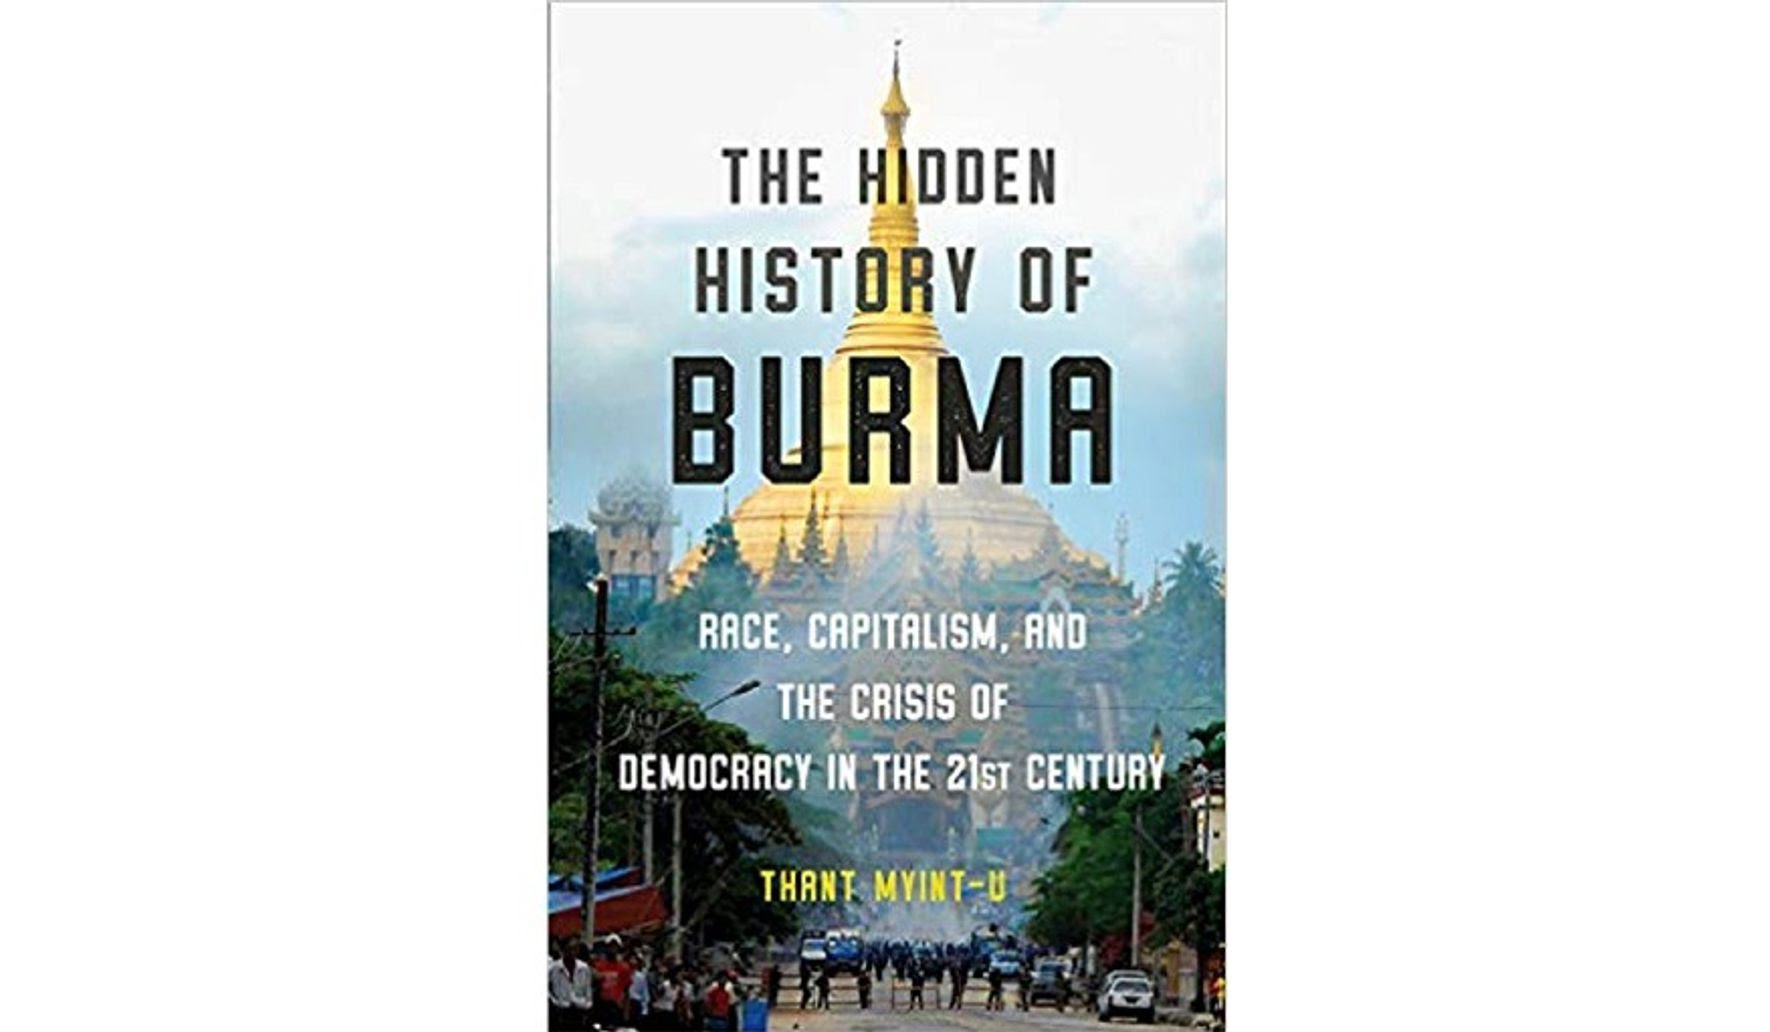 BOOK REVIEW: 'The Hidden History of Burma'